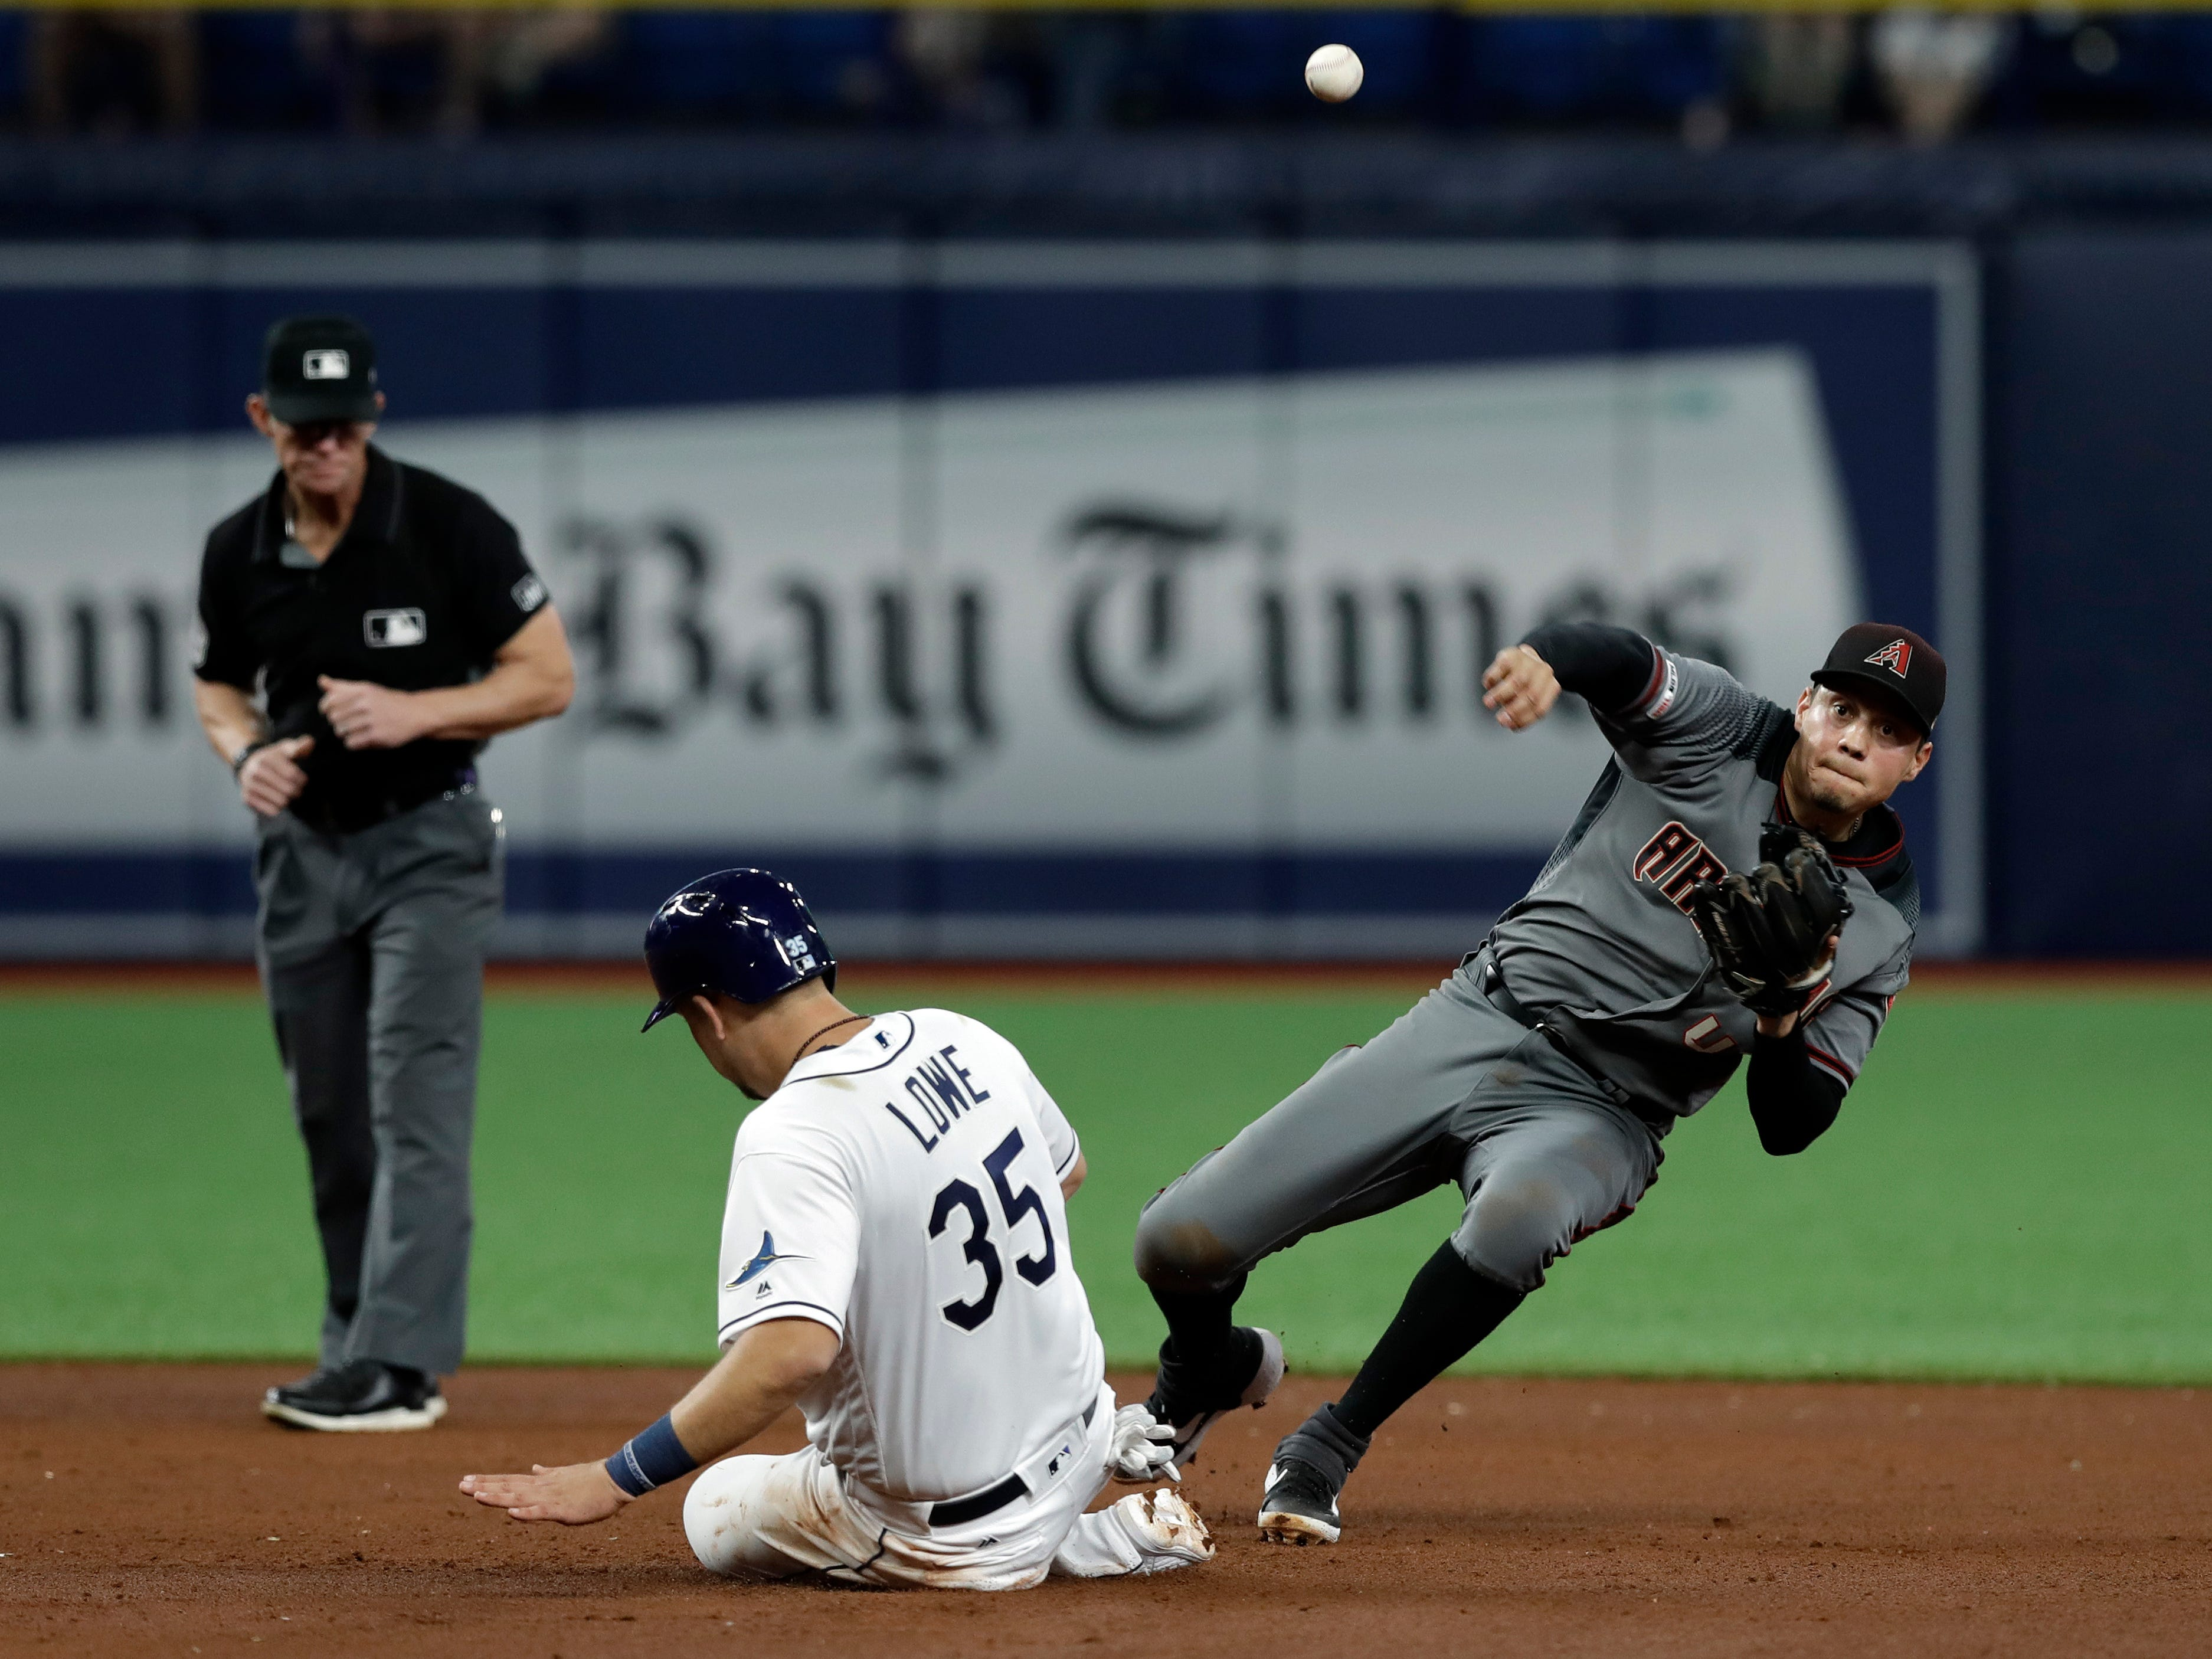 Arizona Diamondbacks second baseman Wilmer Flores, right, falls as he forces Tampa Bay Rays' Nate Lowe (35) on a fielder's choice by Avisail Garcia during the fifth inning of a baseball game Monday, May 6, 2019, in St. Petersburg, Fla. (AP Photo/Chris O'Meara)